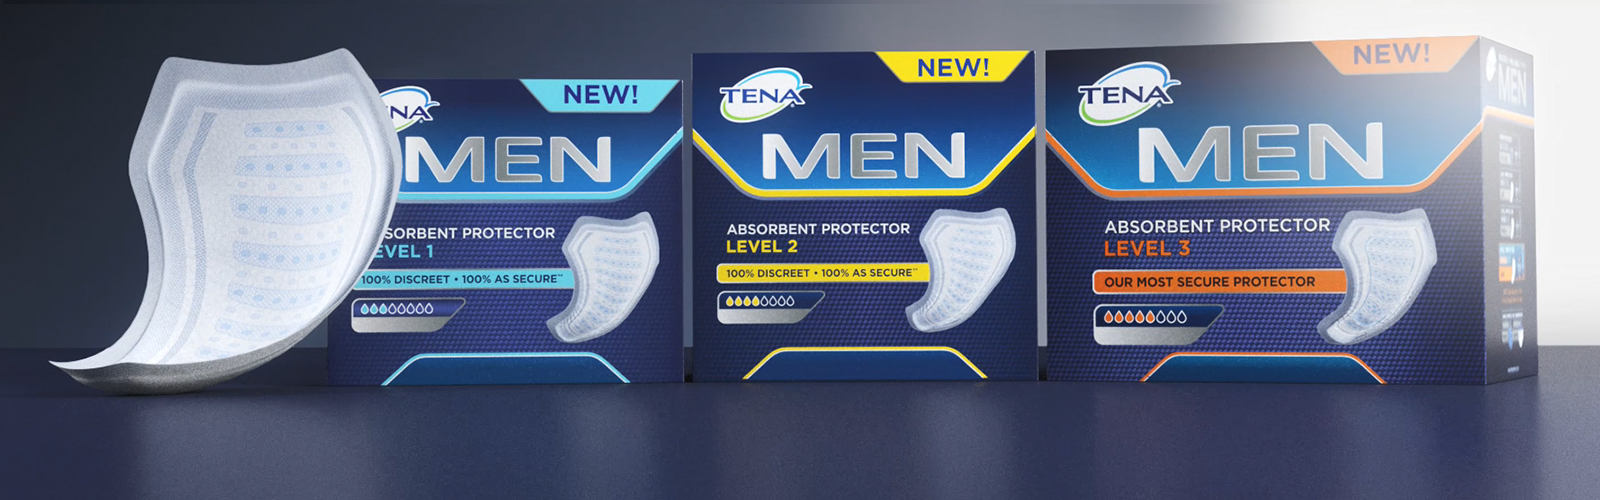 Specially designed male incontinence pads for urine leakage